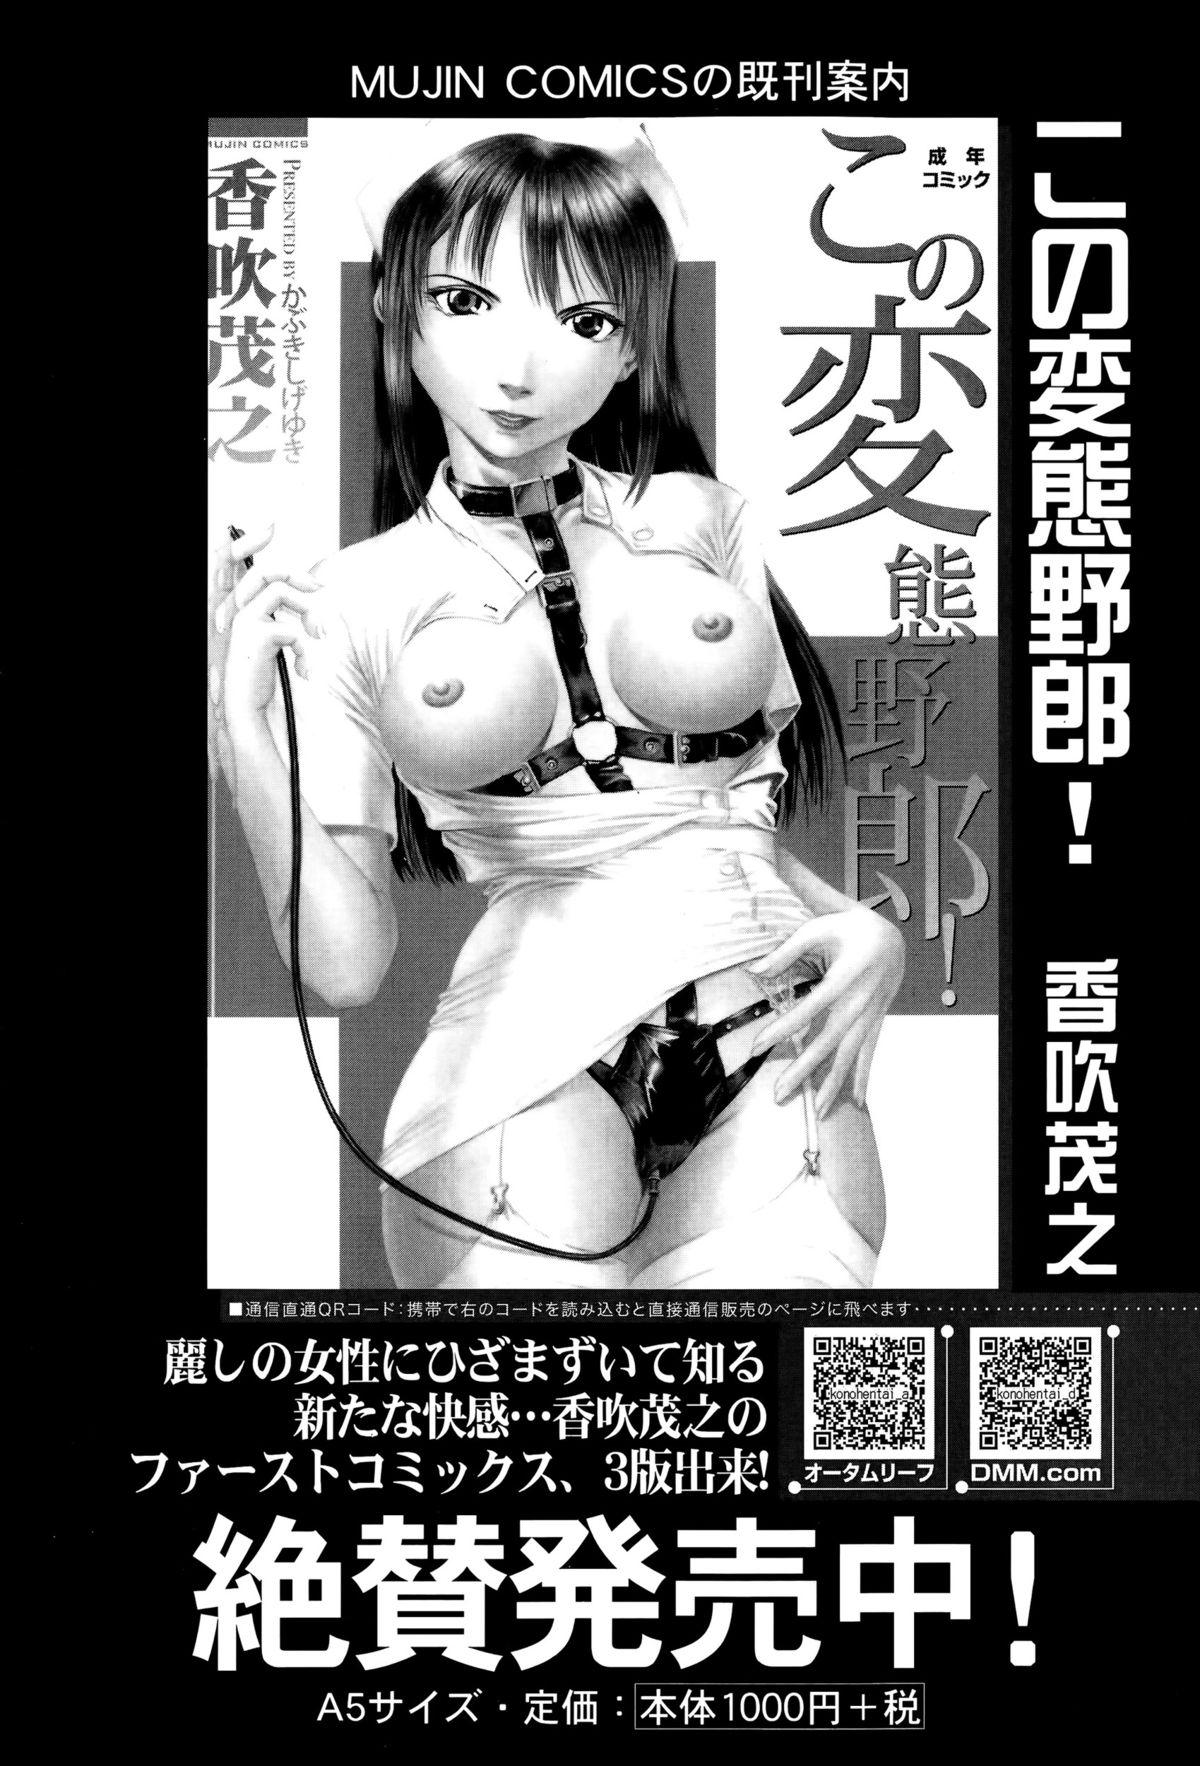 BUSTER COMIC 2015-07 196